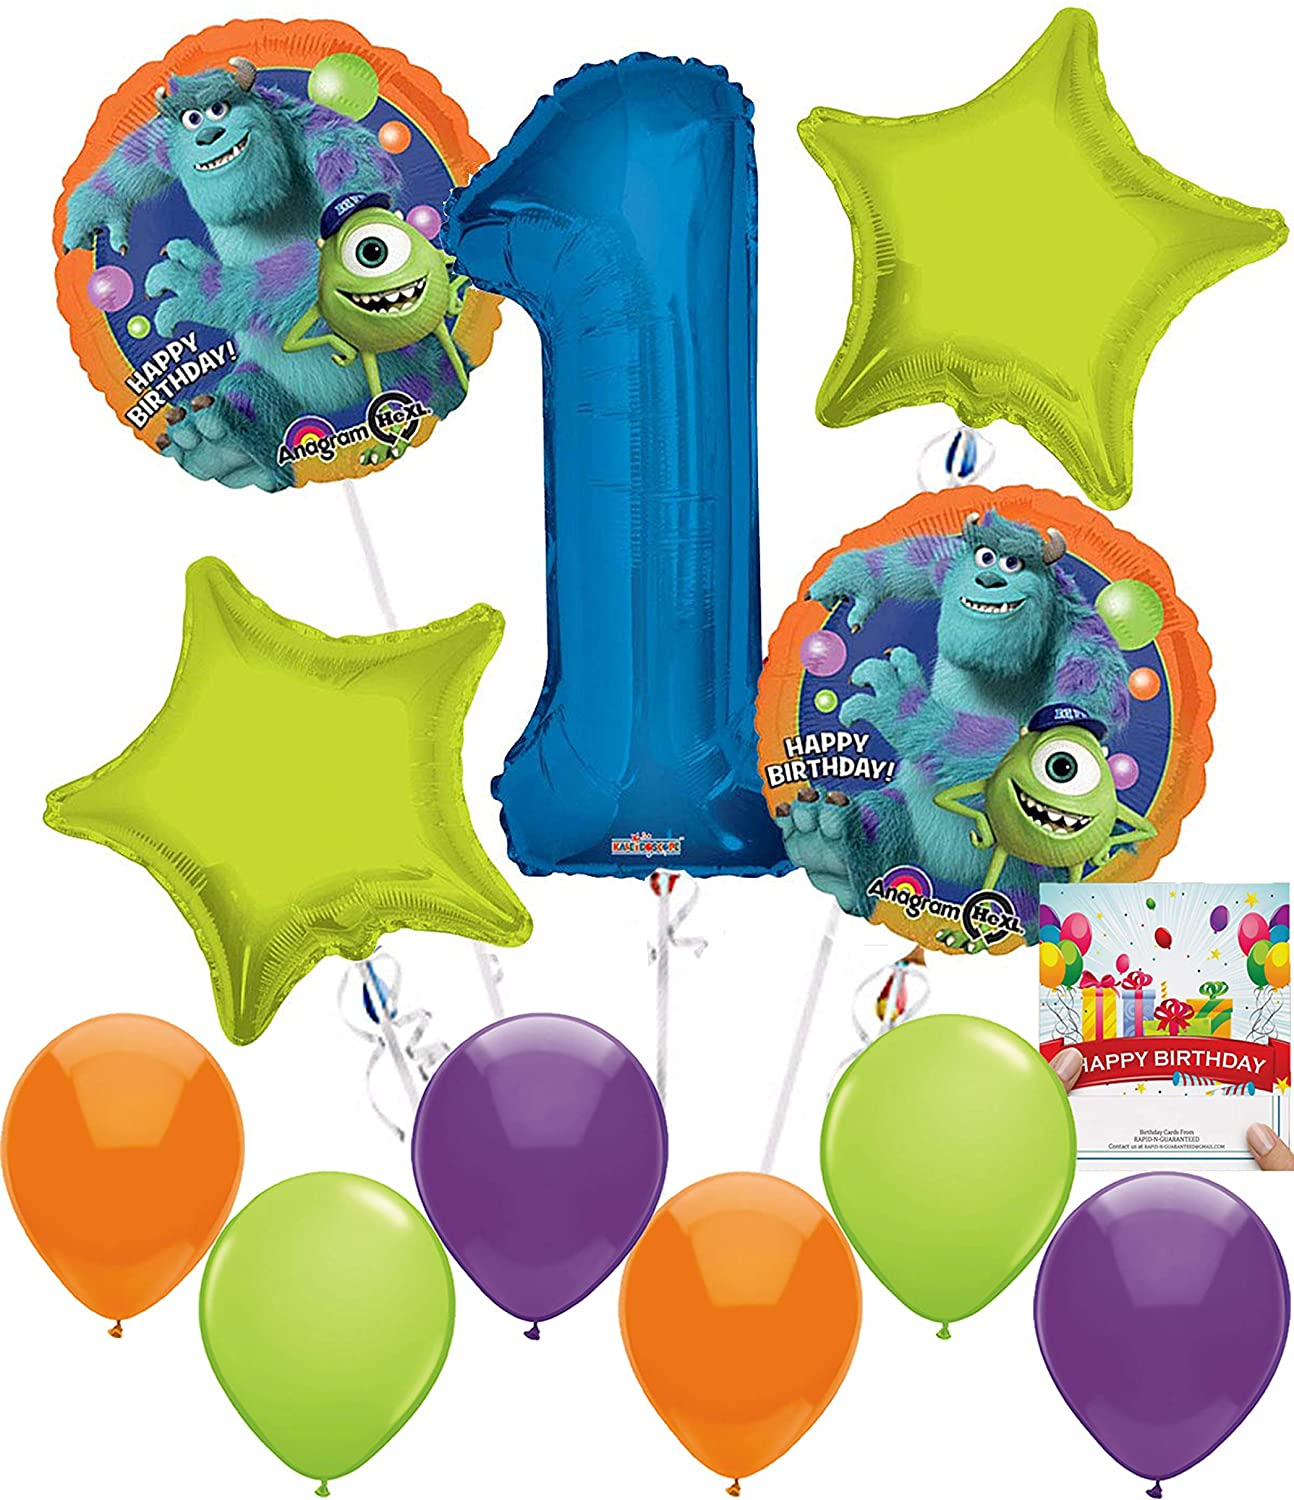 Monster's University Happy Birthday Party Supplies Balloon Decoration Bundle for 1st Birthday